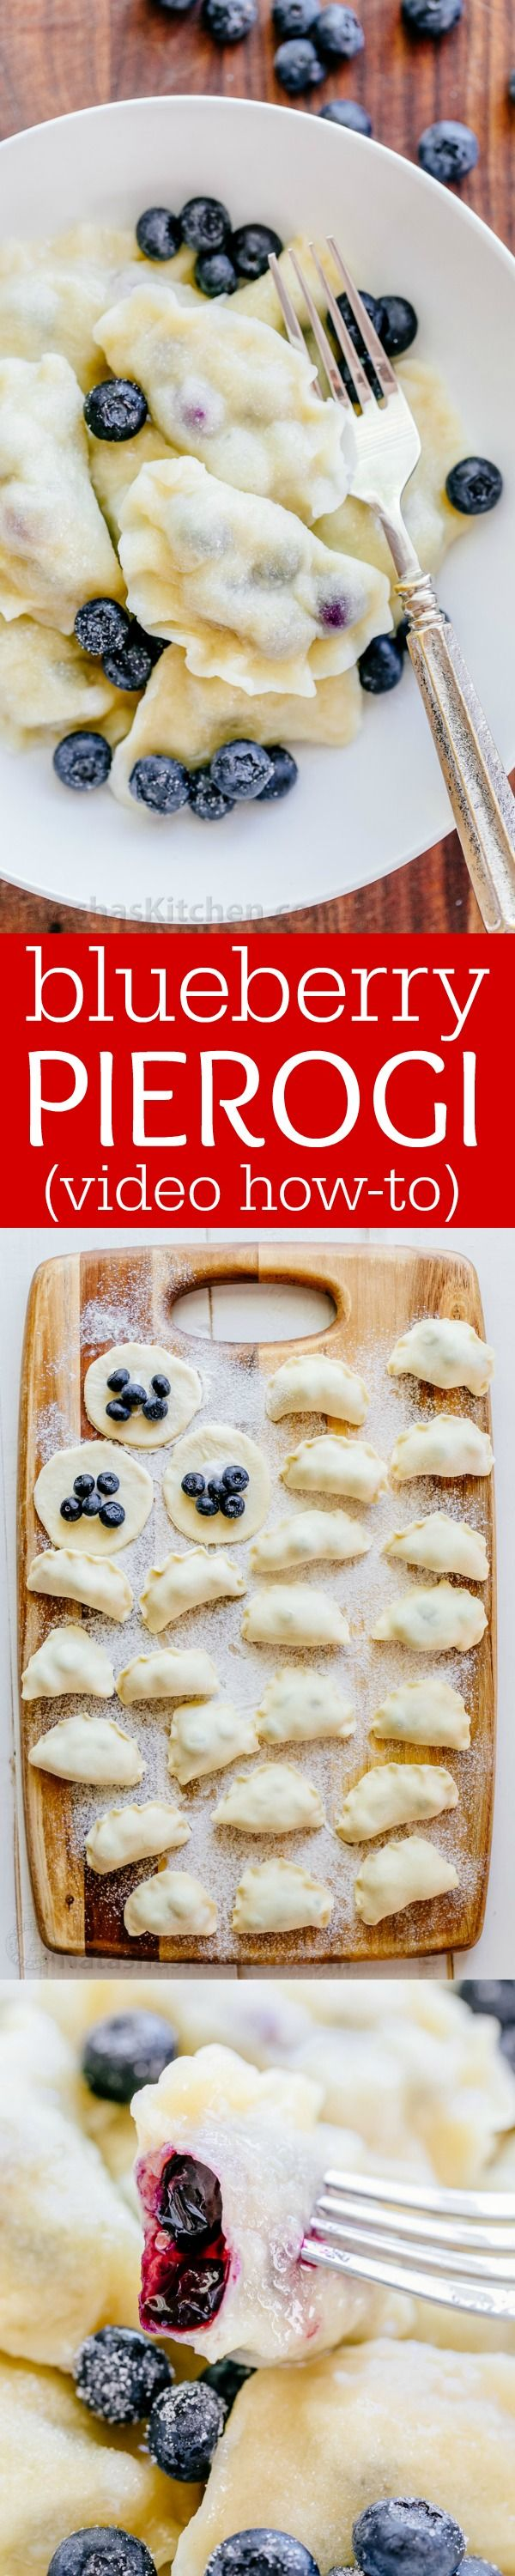 Blueberry Pierogi Recipe (VIDEO)